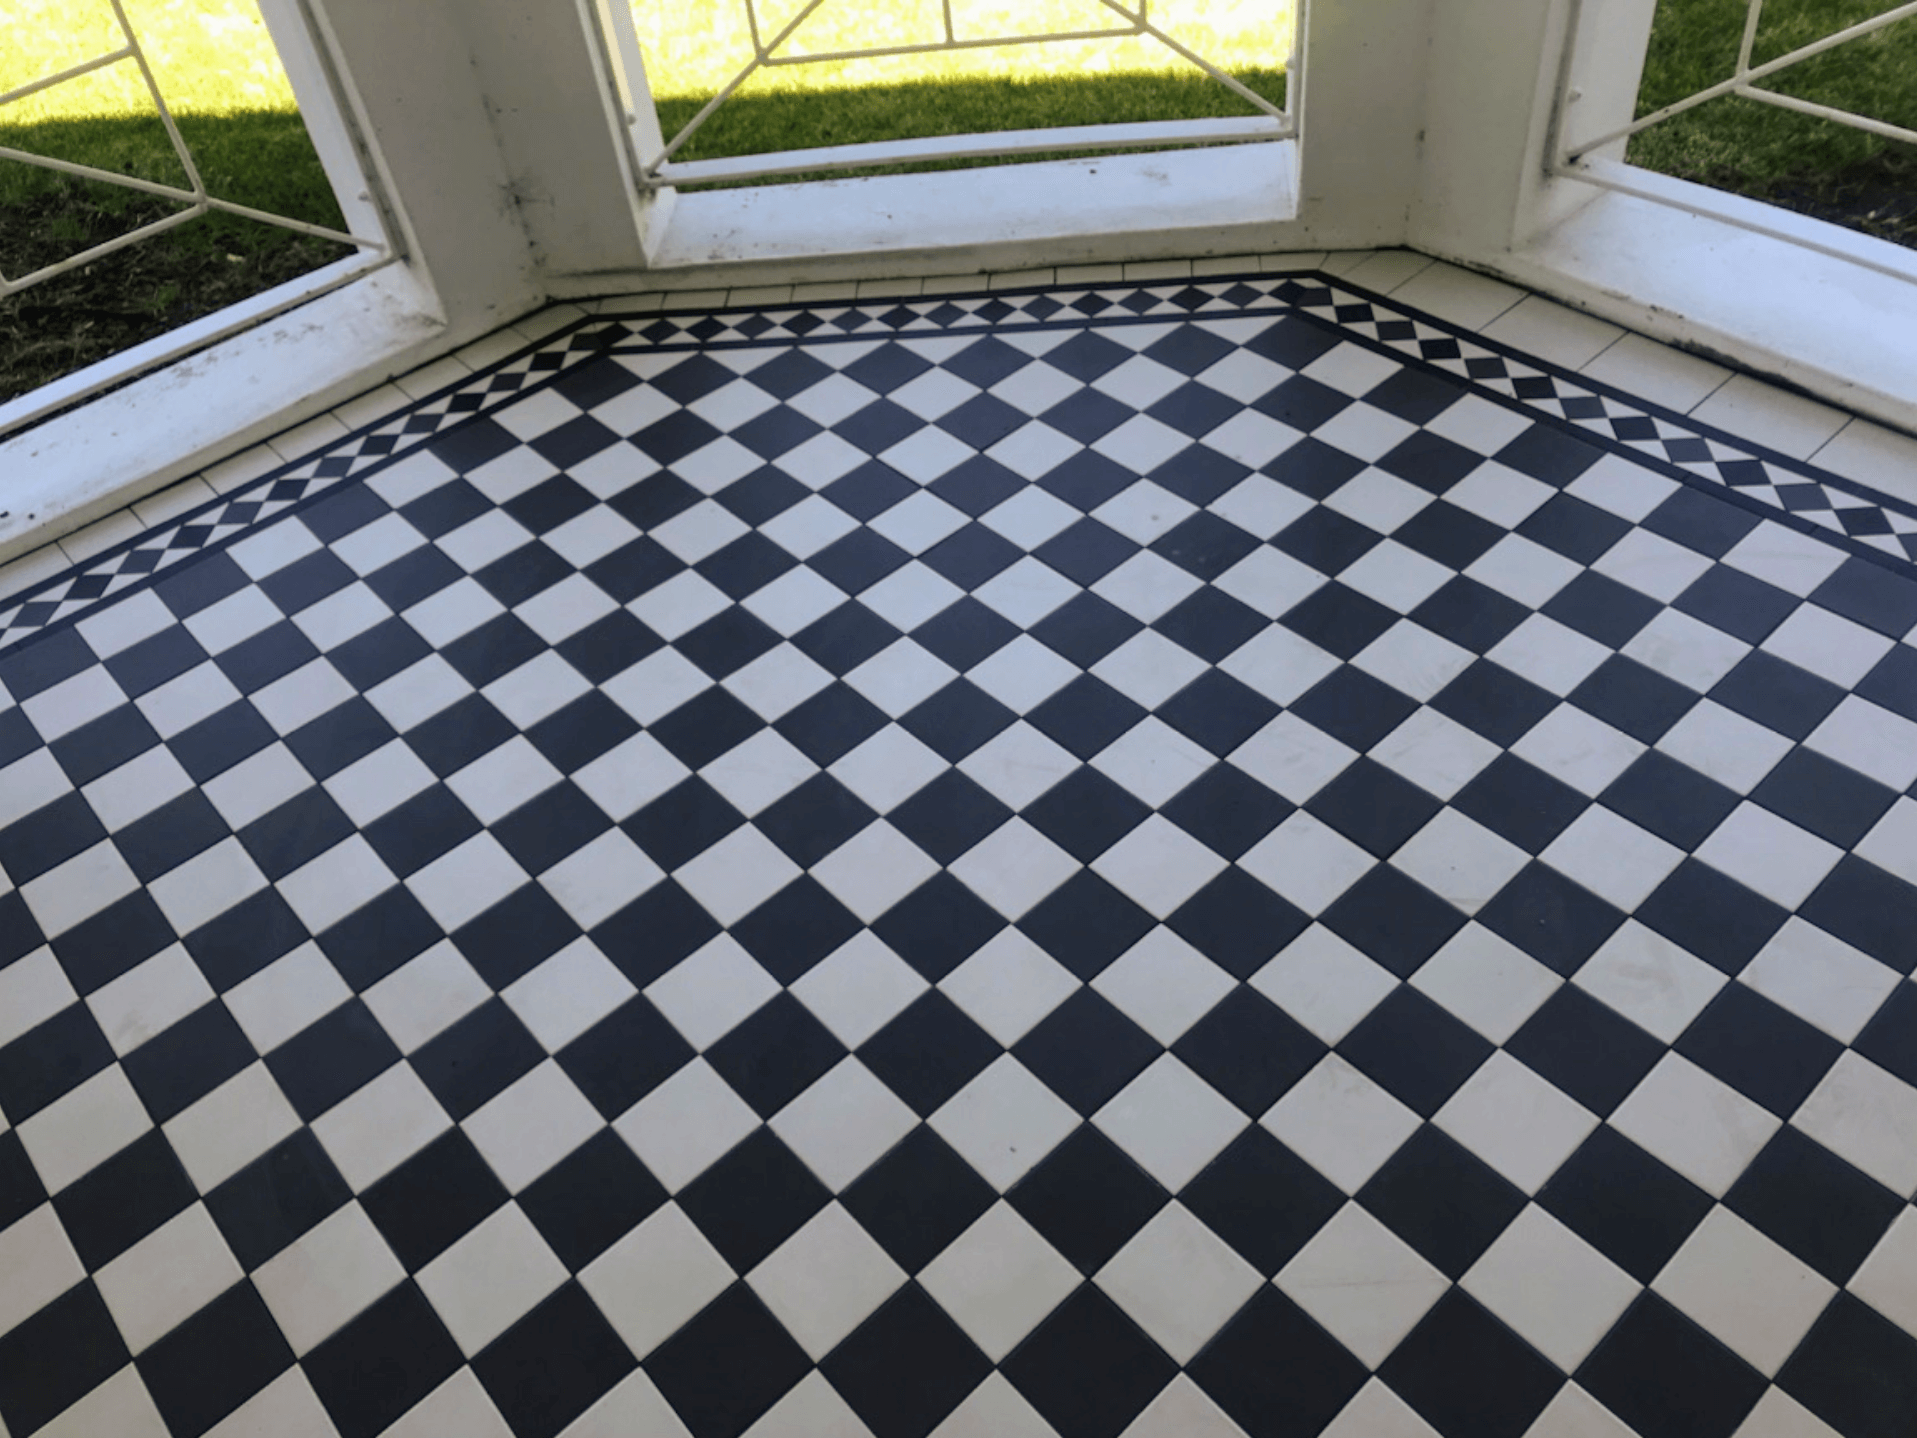 Tessellated tiling melbourne tile furniture victorian mosaic attractive look of checker body and norwood border dailygadgetfo Images